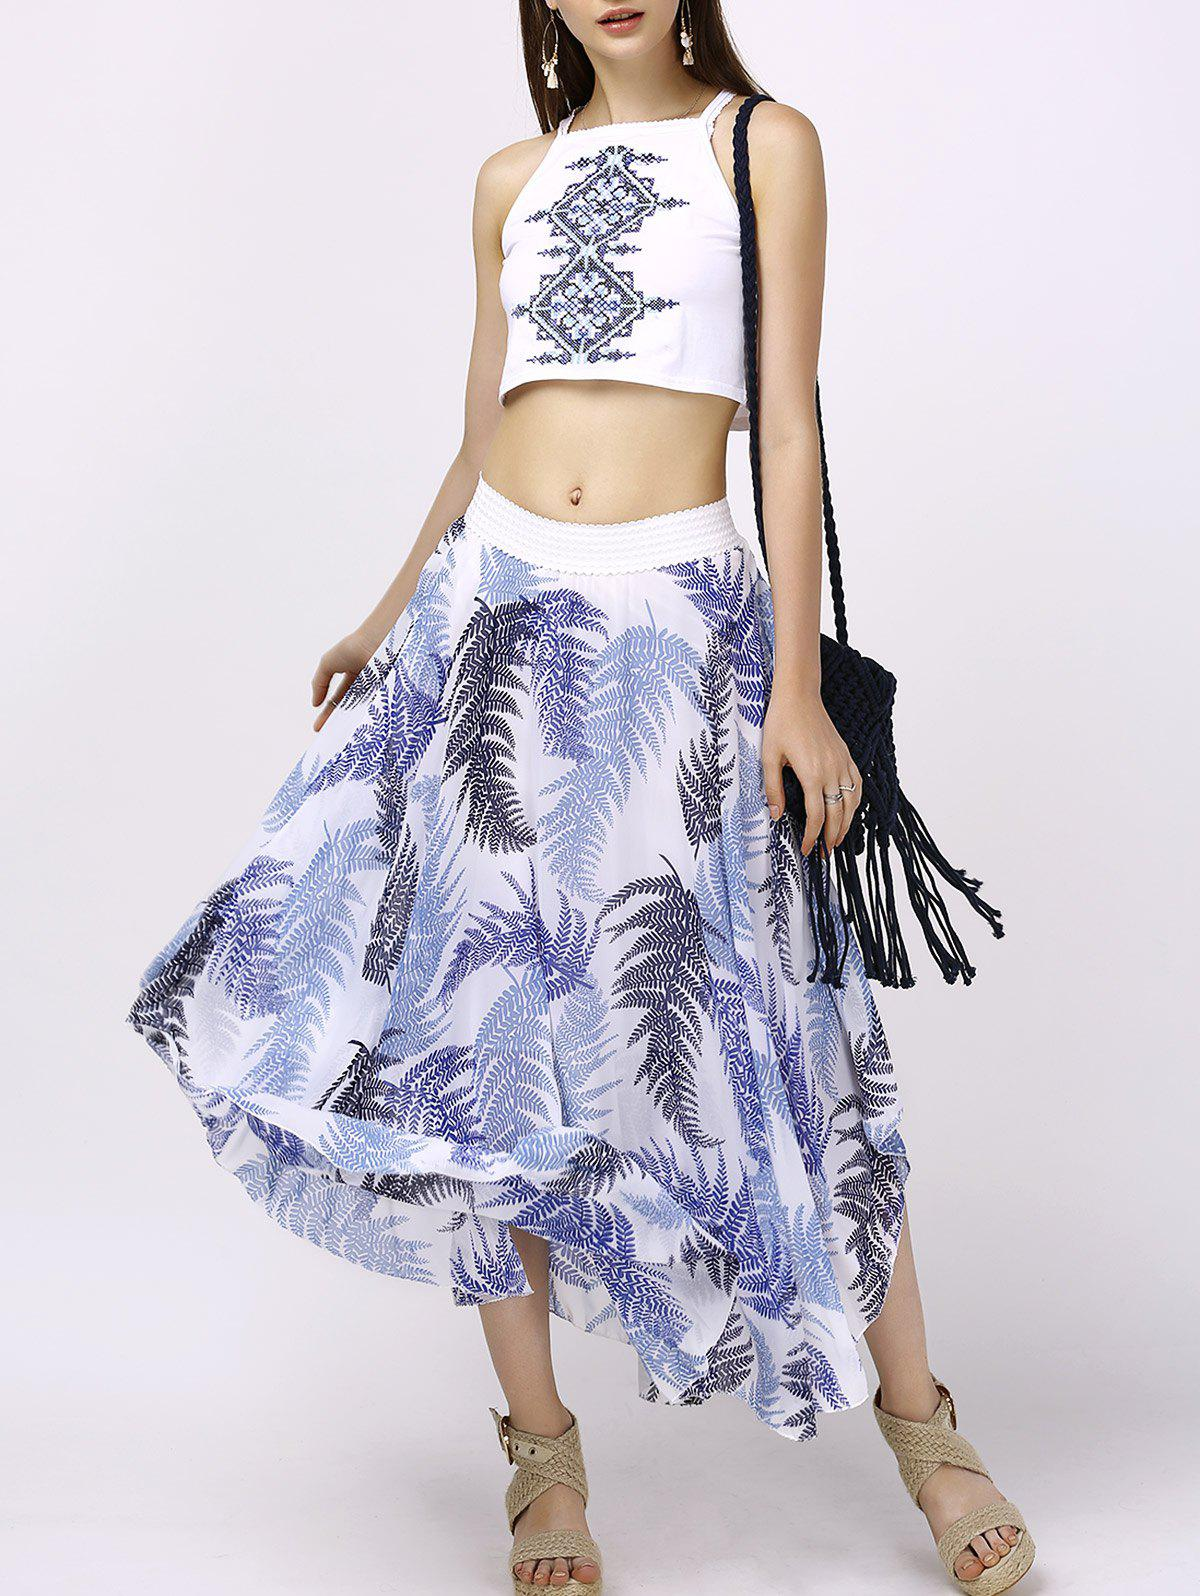 Ethnic Style Women's Embroidered Tank Top and Leaf Print Skirt Set